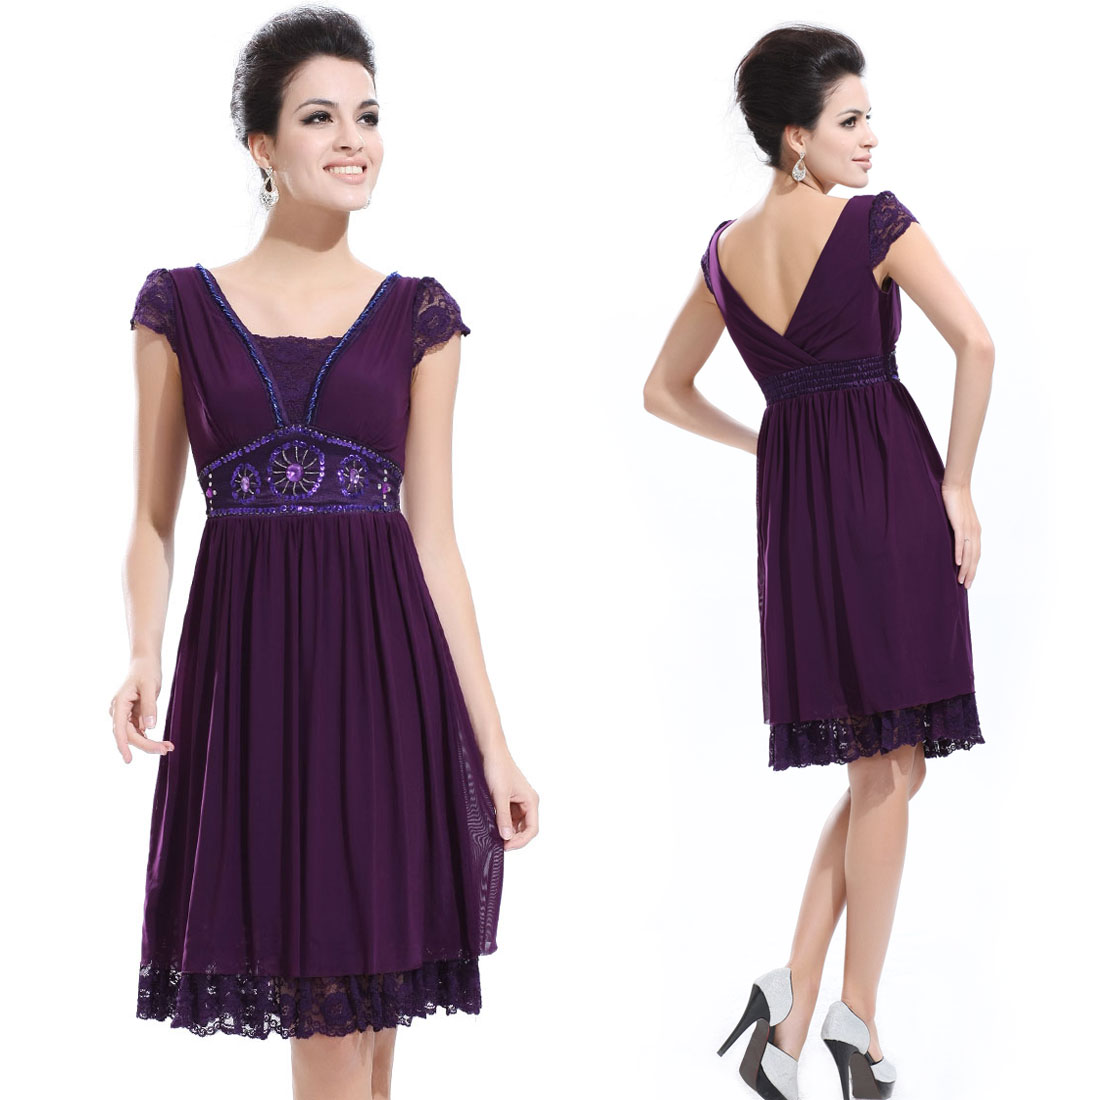 Elegant Purple Ruched Lace Cocktail Dress 02891 Size L on eBay.ca (item 220508254953 end time  09-Dec-09 17:04:41 EST)